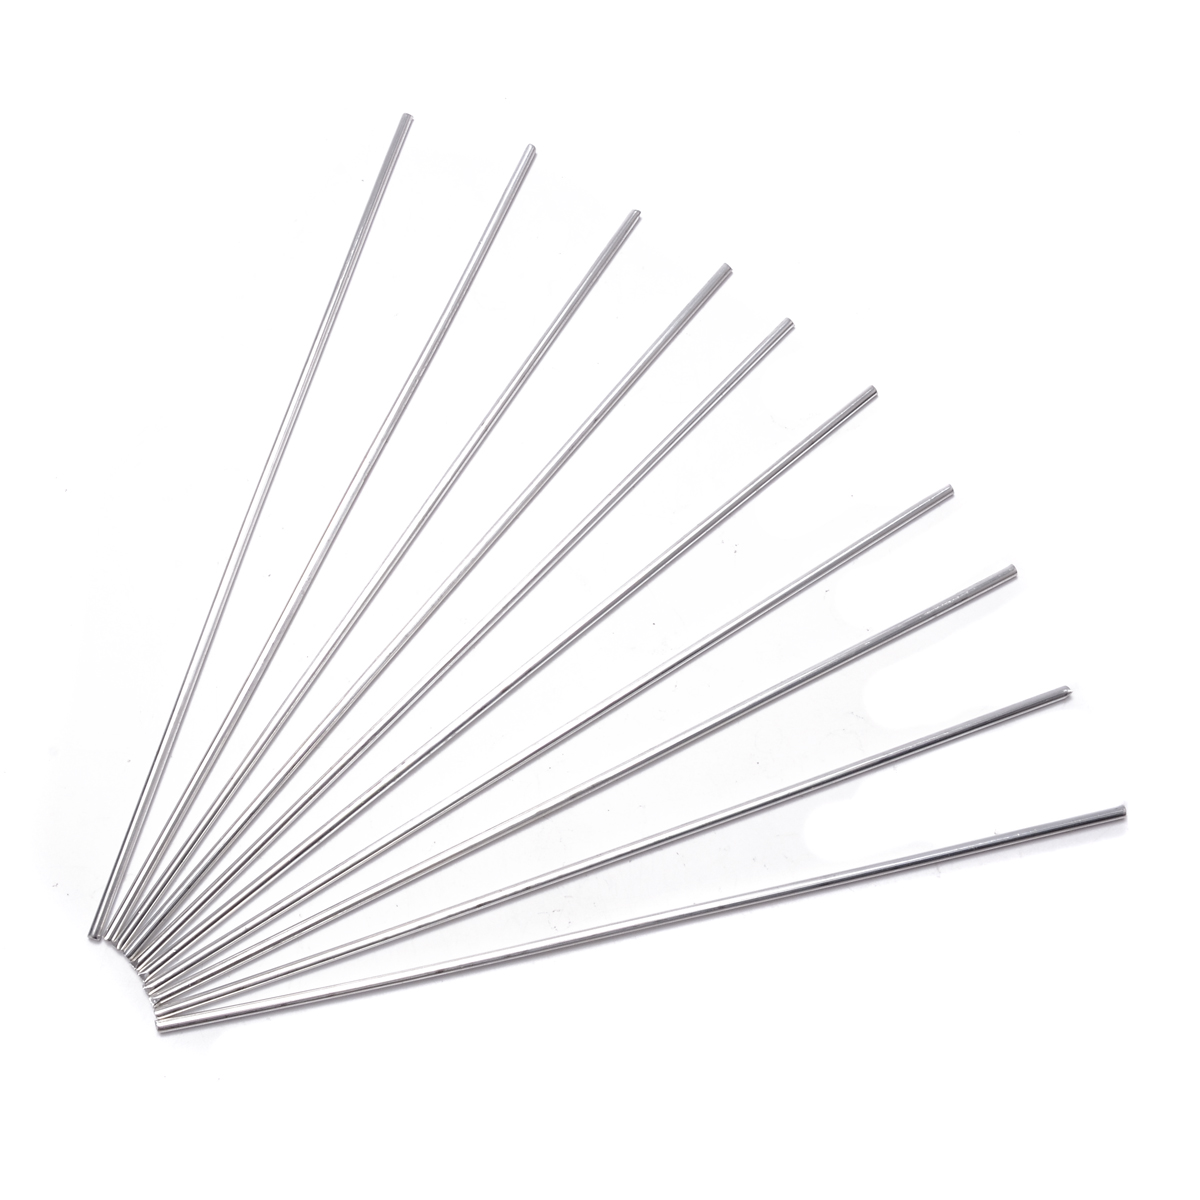 10pcs Aluminium Low Temperature Welding Brazing Rod 3.2mm